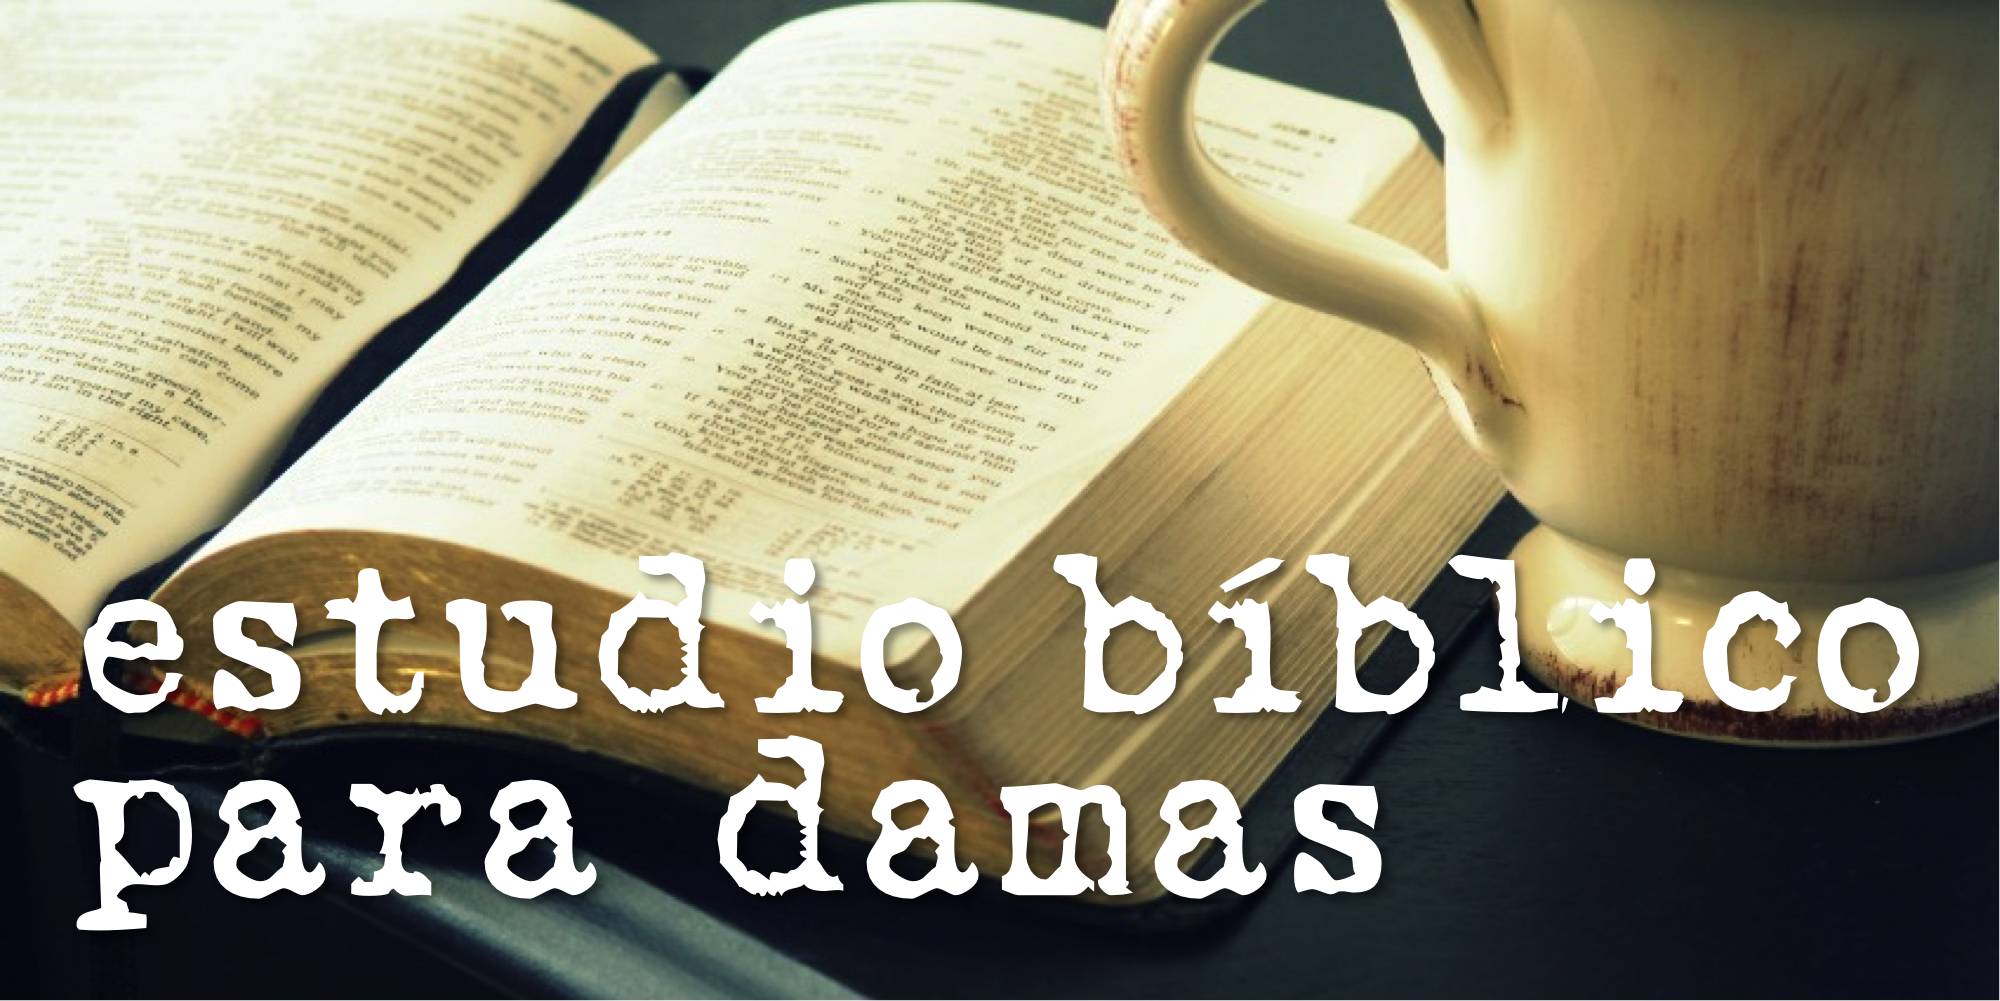 Free Bible Study Apps and Programs - Biblical Christianity